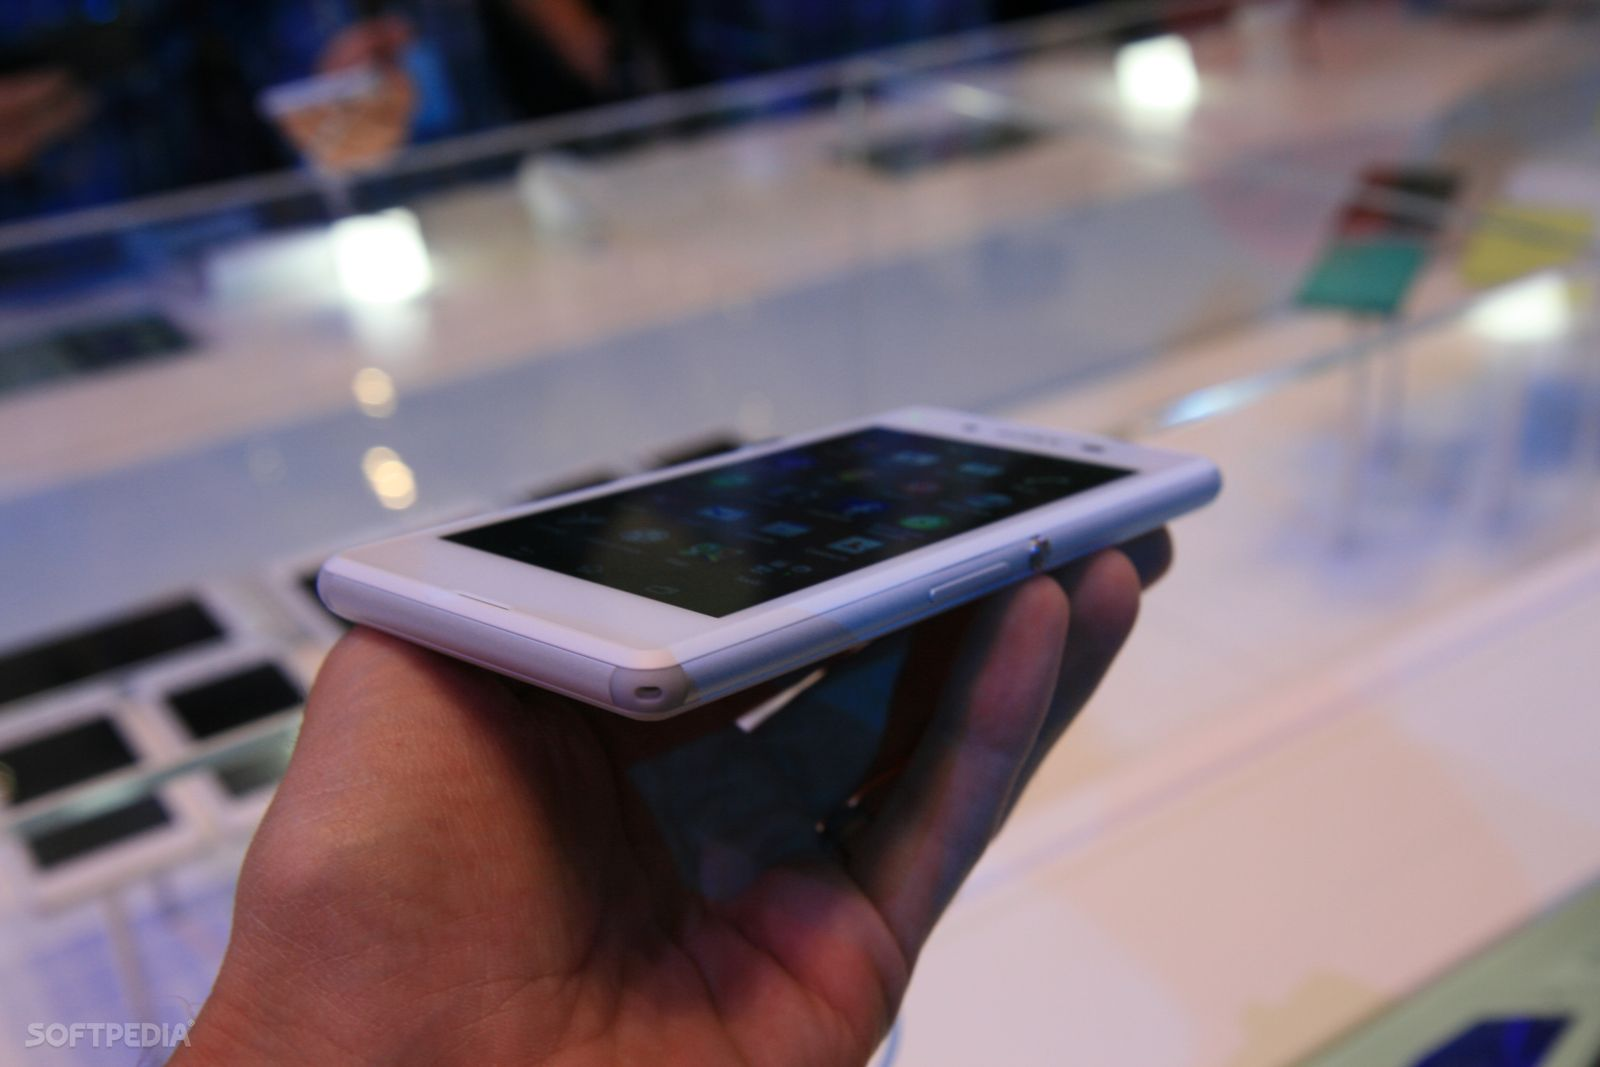 IFA 2014: Sony Announces the Affordable Xperia E3 with LTE ...